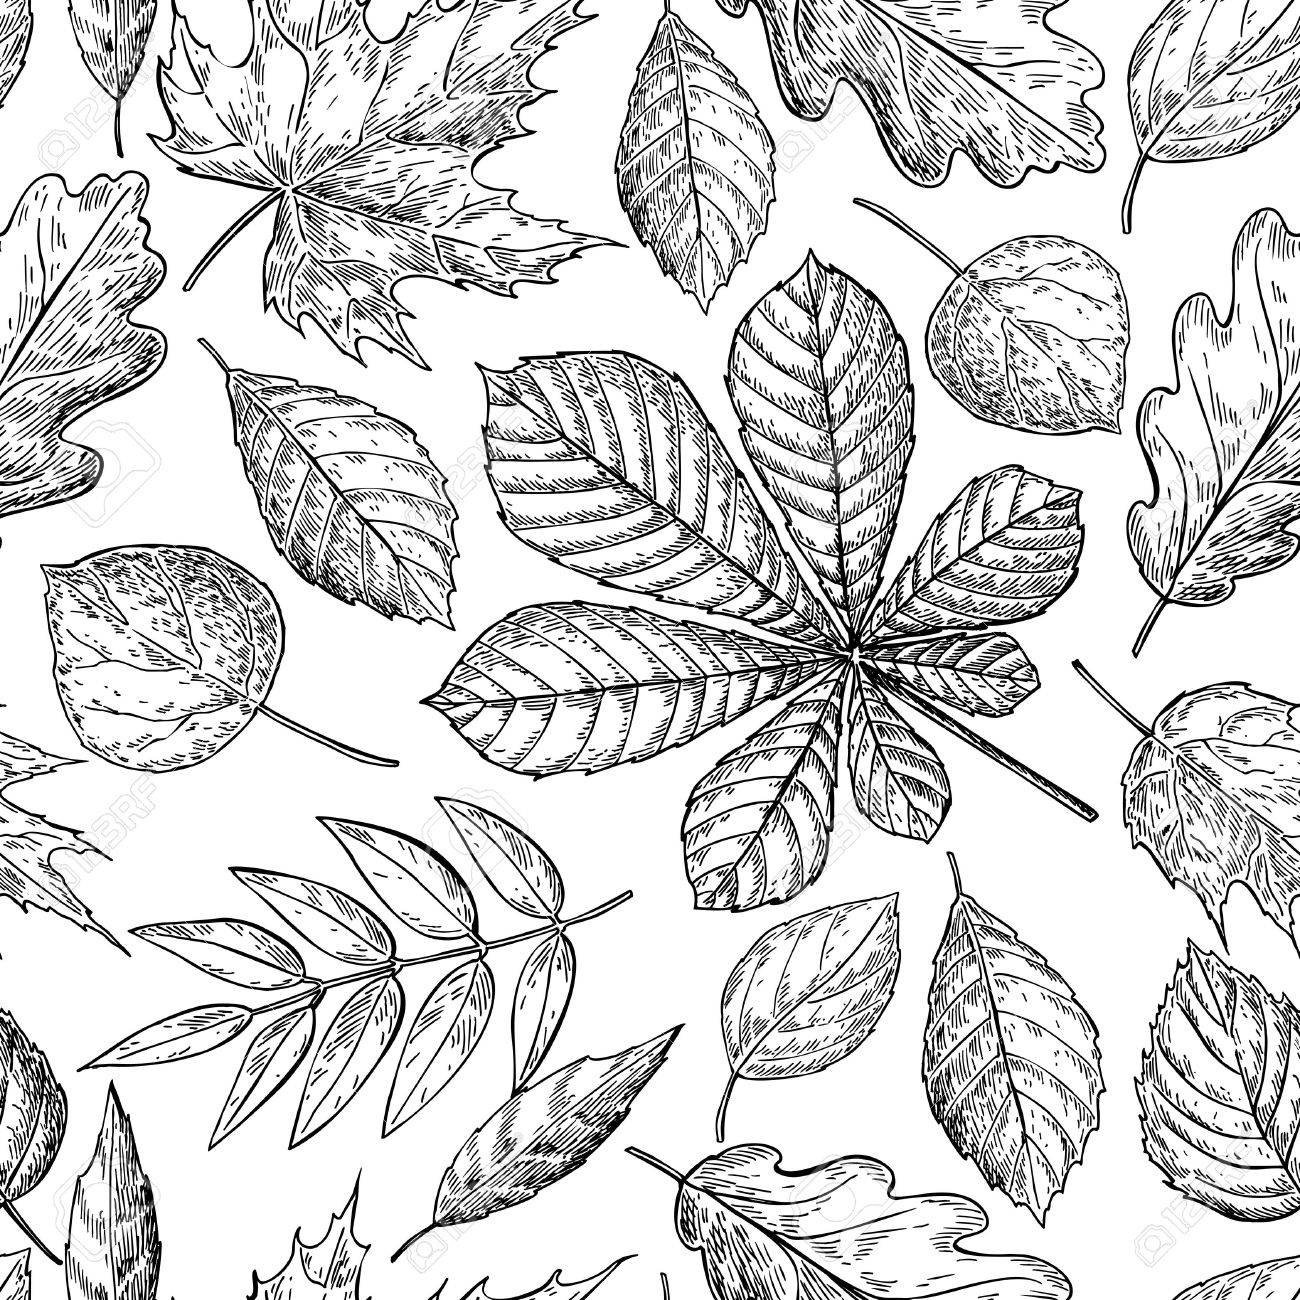 1300x1300 Seamless Vector Pattern With Autumn Leaves. Hand Drawn Detailed